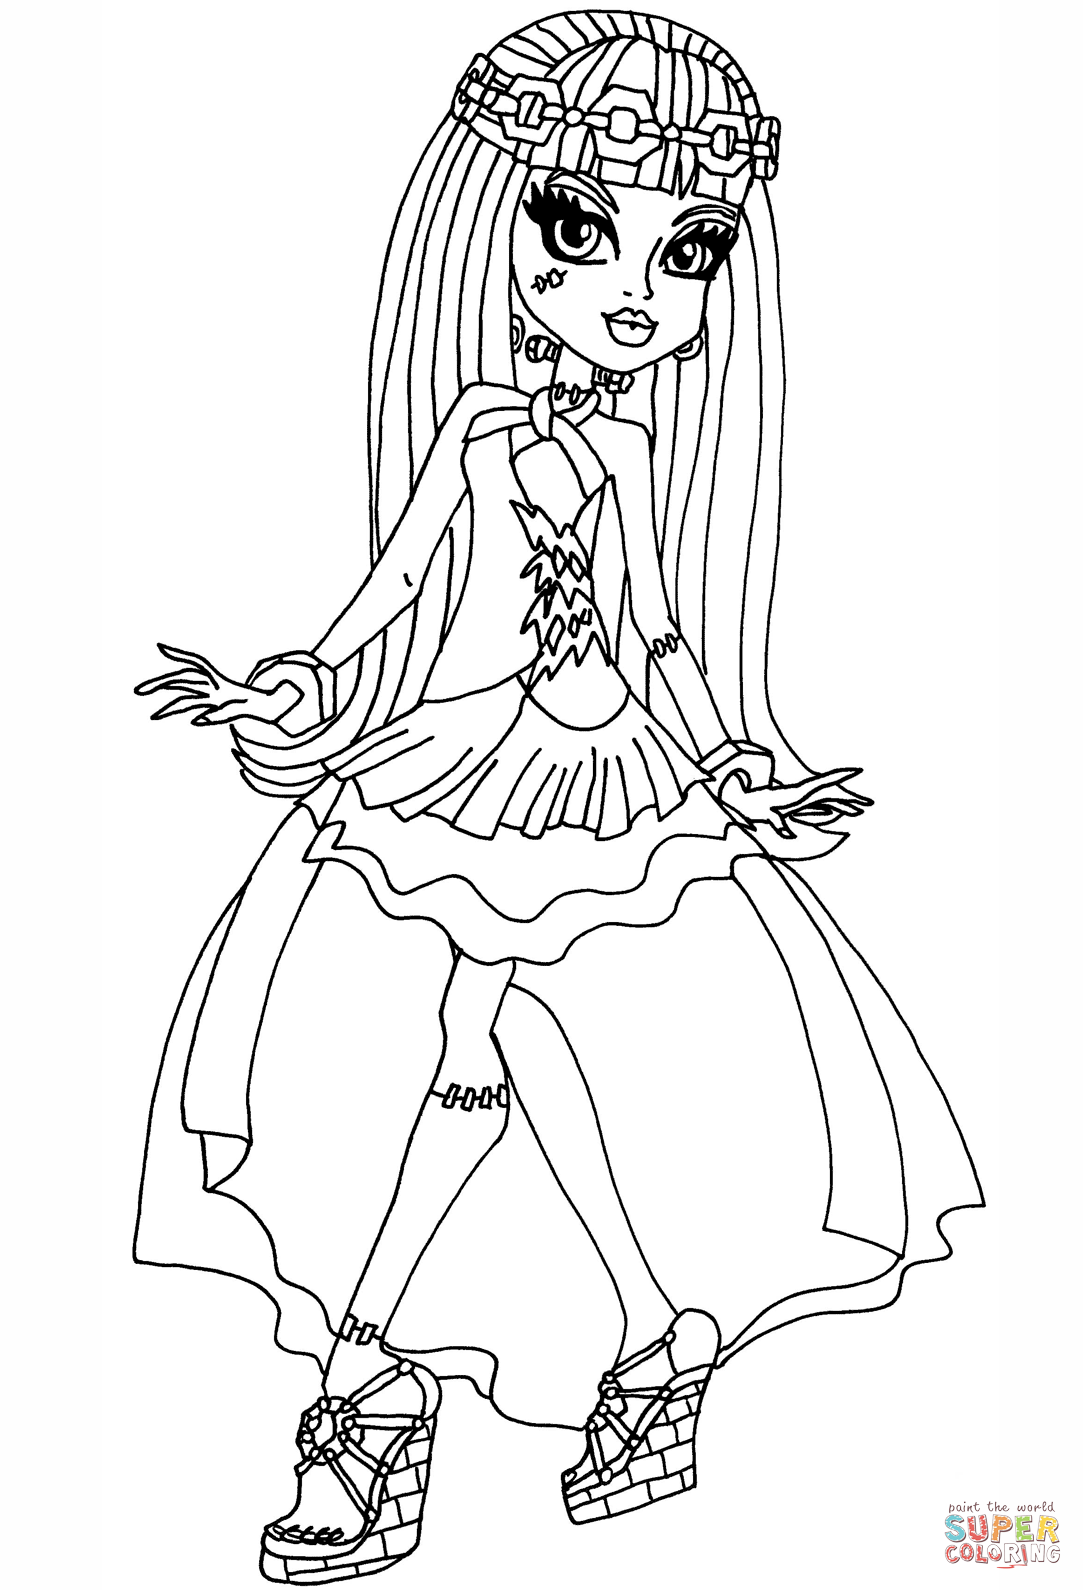 monster high coloring pages frankie monster high coloring pages free download on clipartmag pages monster coloring frankie high